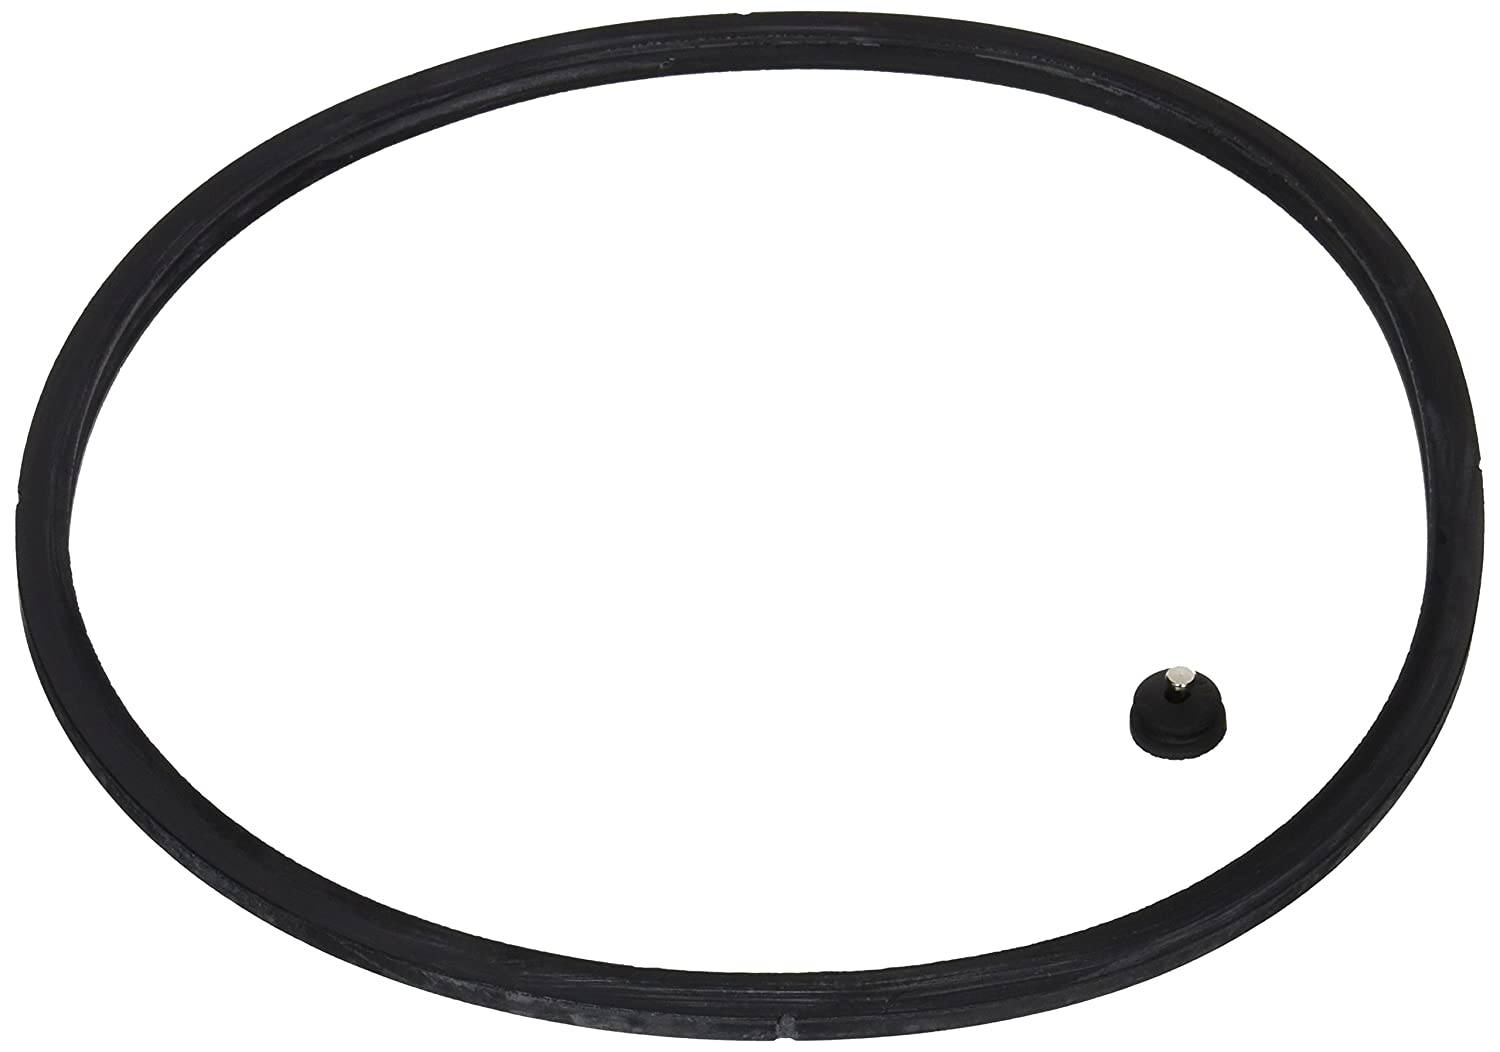 Presto 09919 Pressure Cooker Sealing Ring/Automatic Air Vent Pack (3 & 4 Quart)